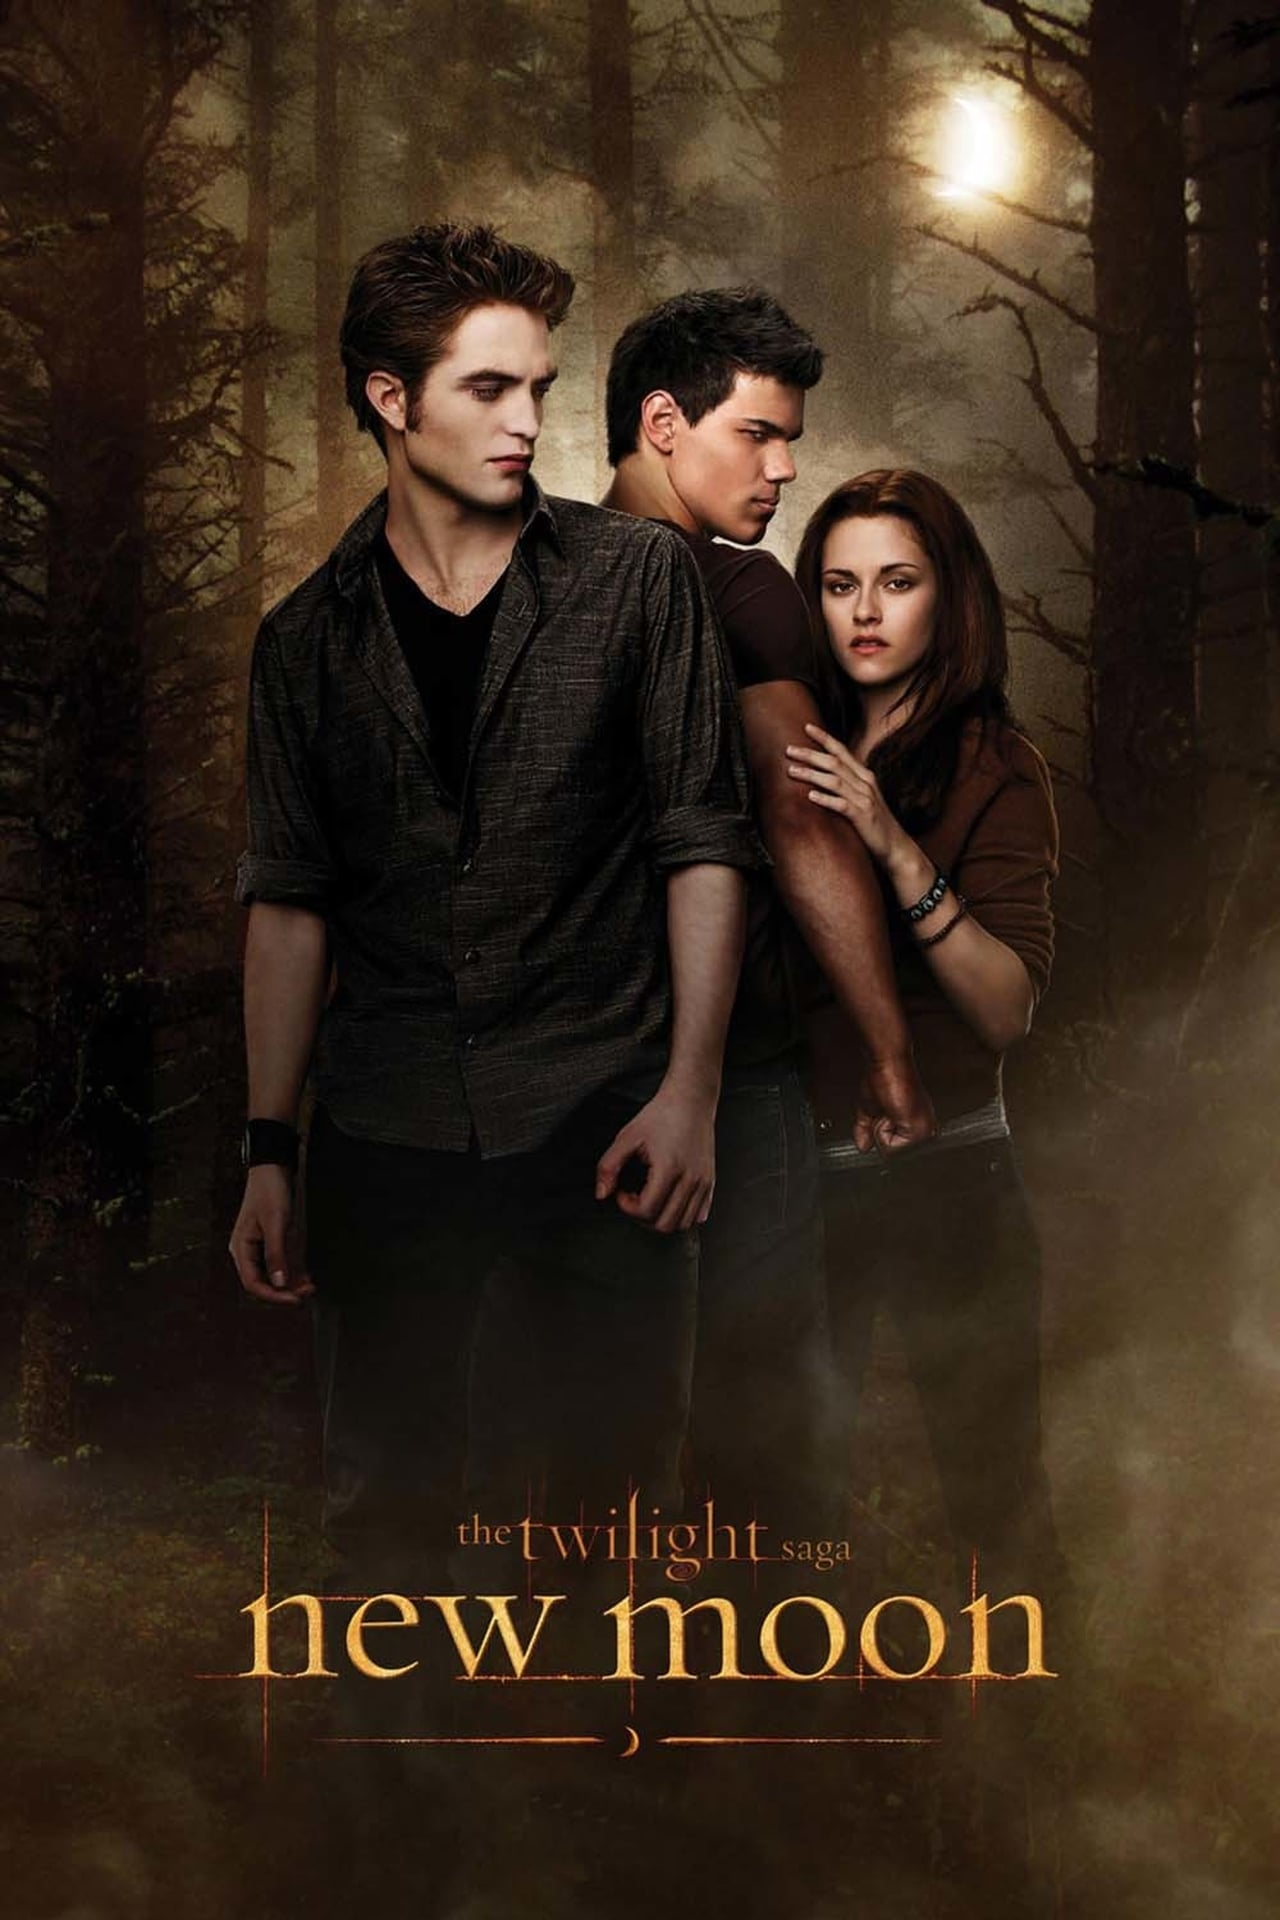 Download The Twilight Saga: New Moon (2009) Dual Audio [Hindi-English] 480p [350MB] | 720p [850MB] | 1080p [3.7GB]